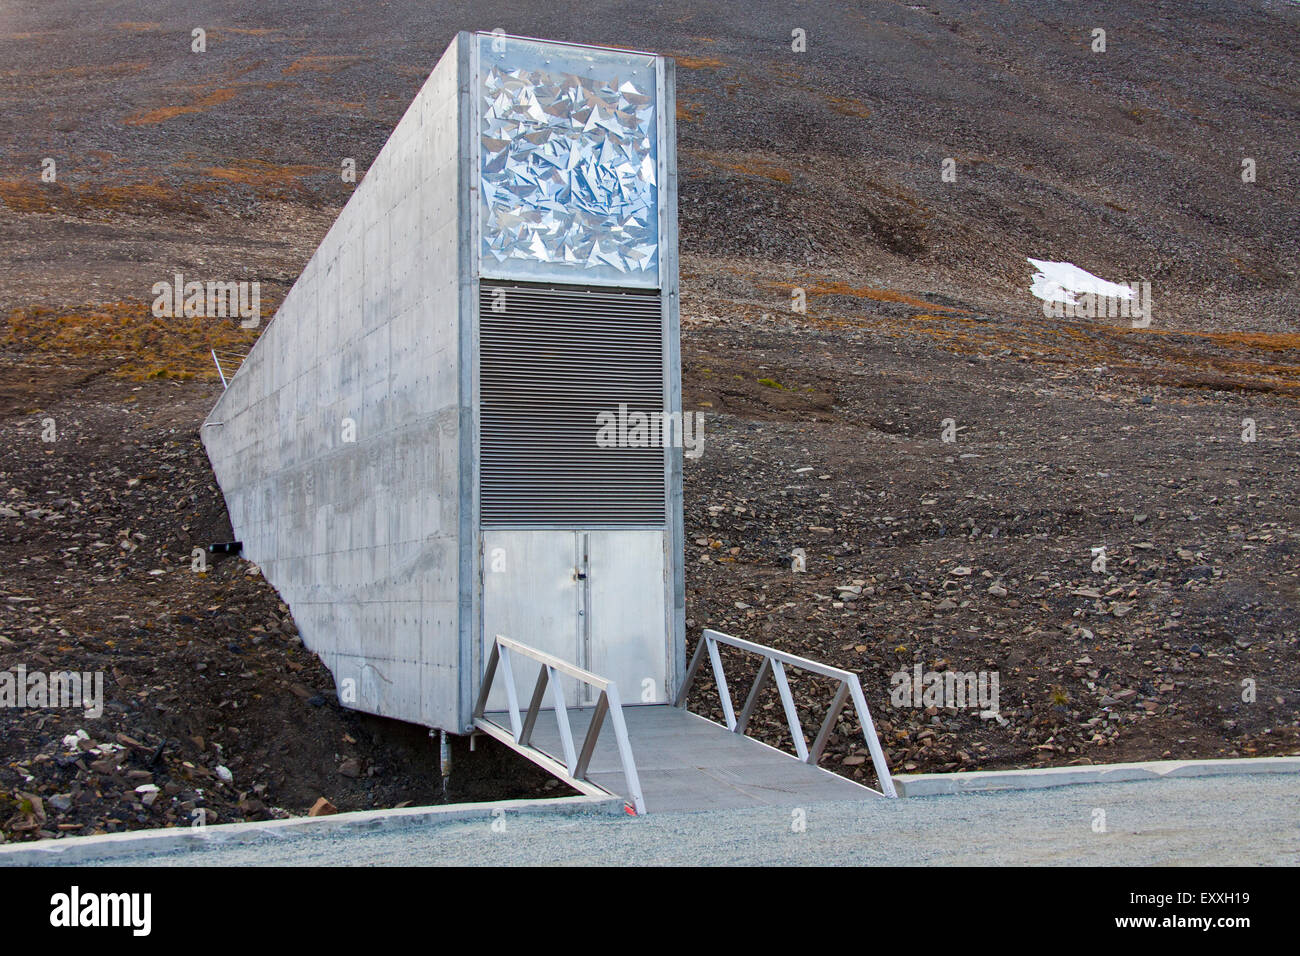 Entrance to the Svalbard Global Seed Vault, largest seed bank in the world near Longyearbyen on the island of Spitsbergen - Stock Image